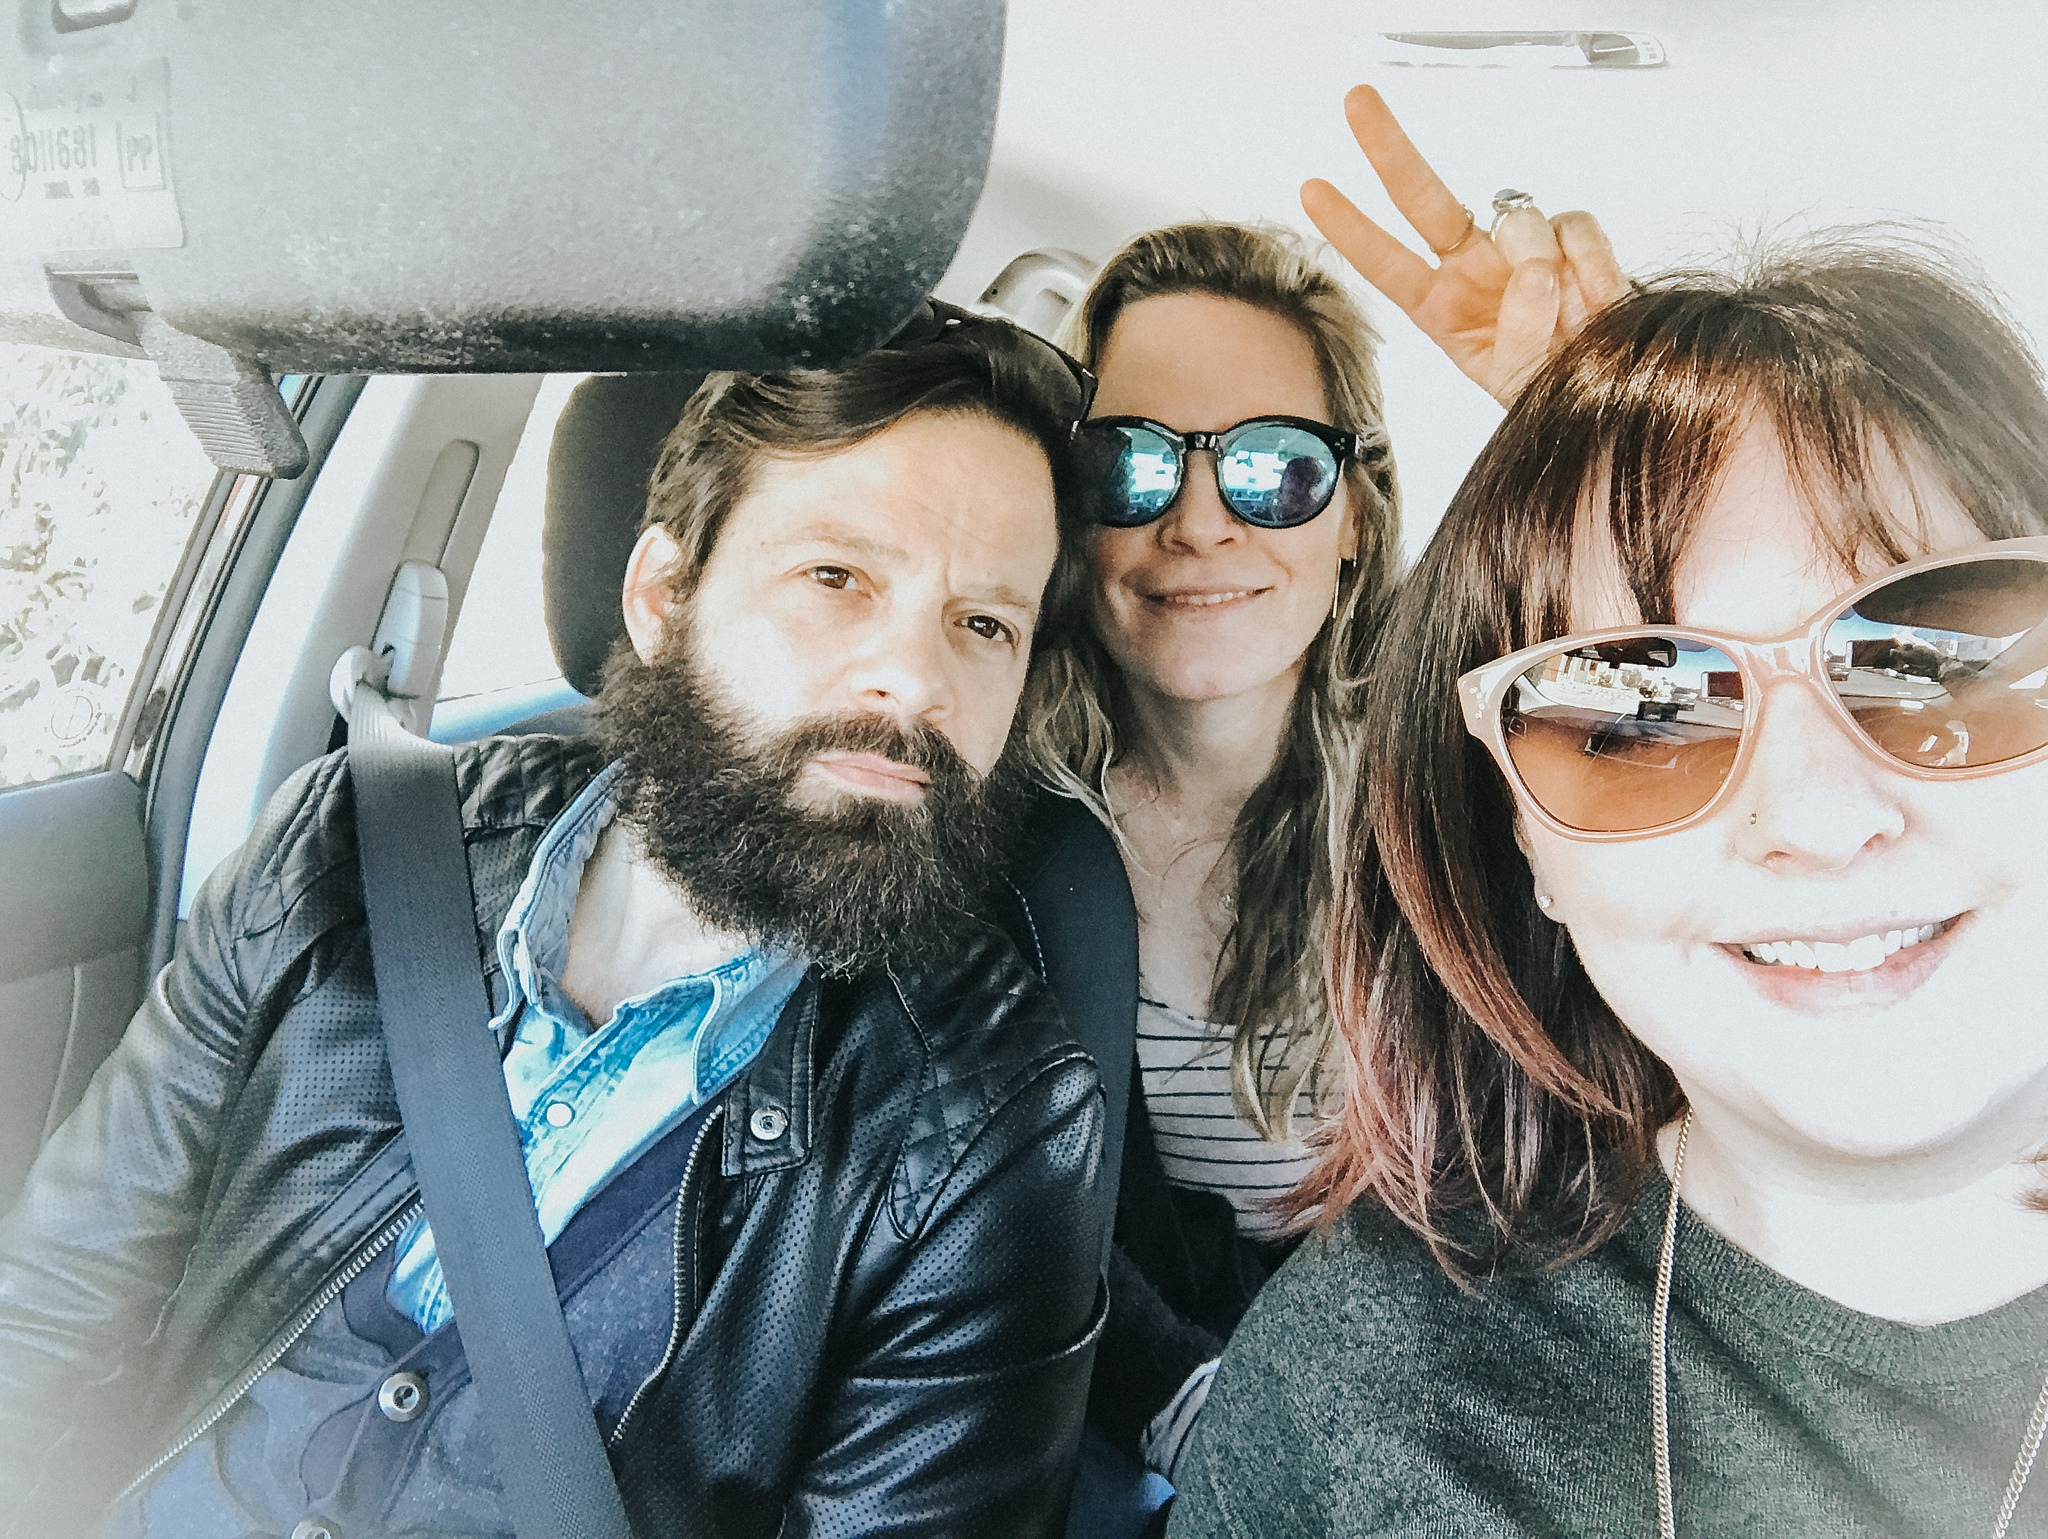 Theirry and Cathlin - the best roadtripping buddies.